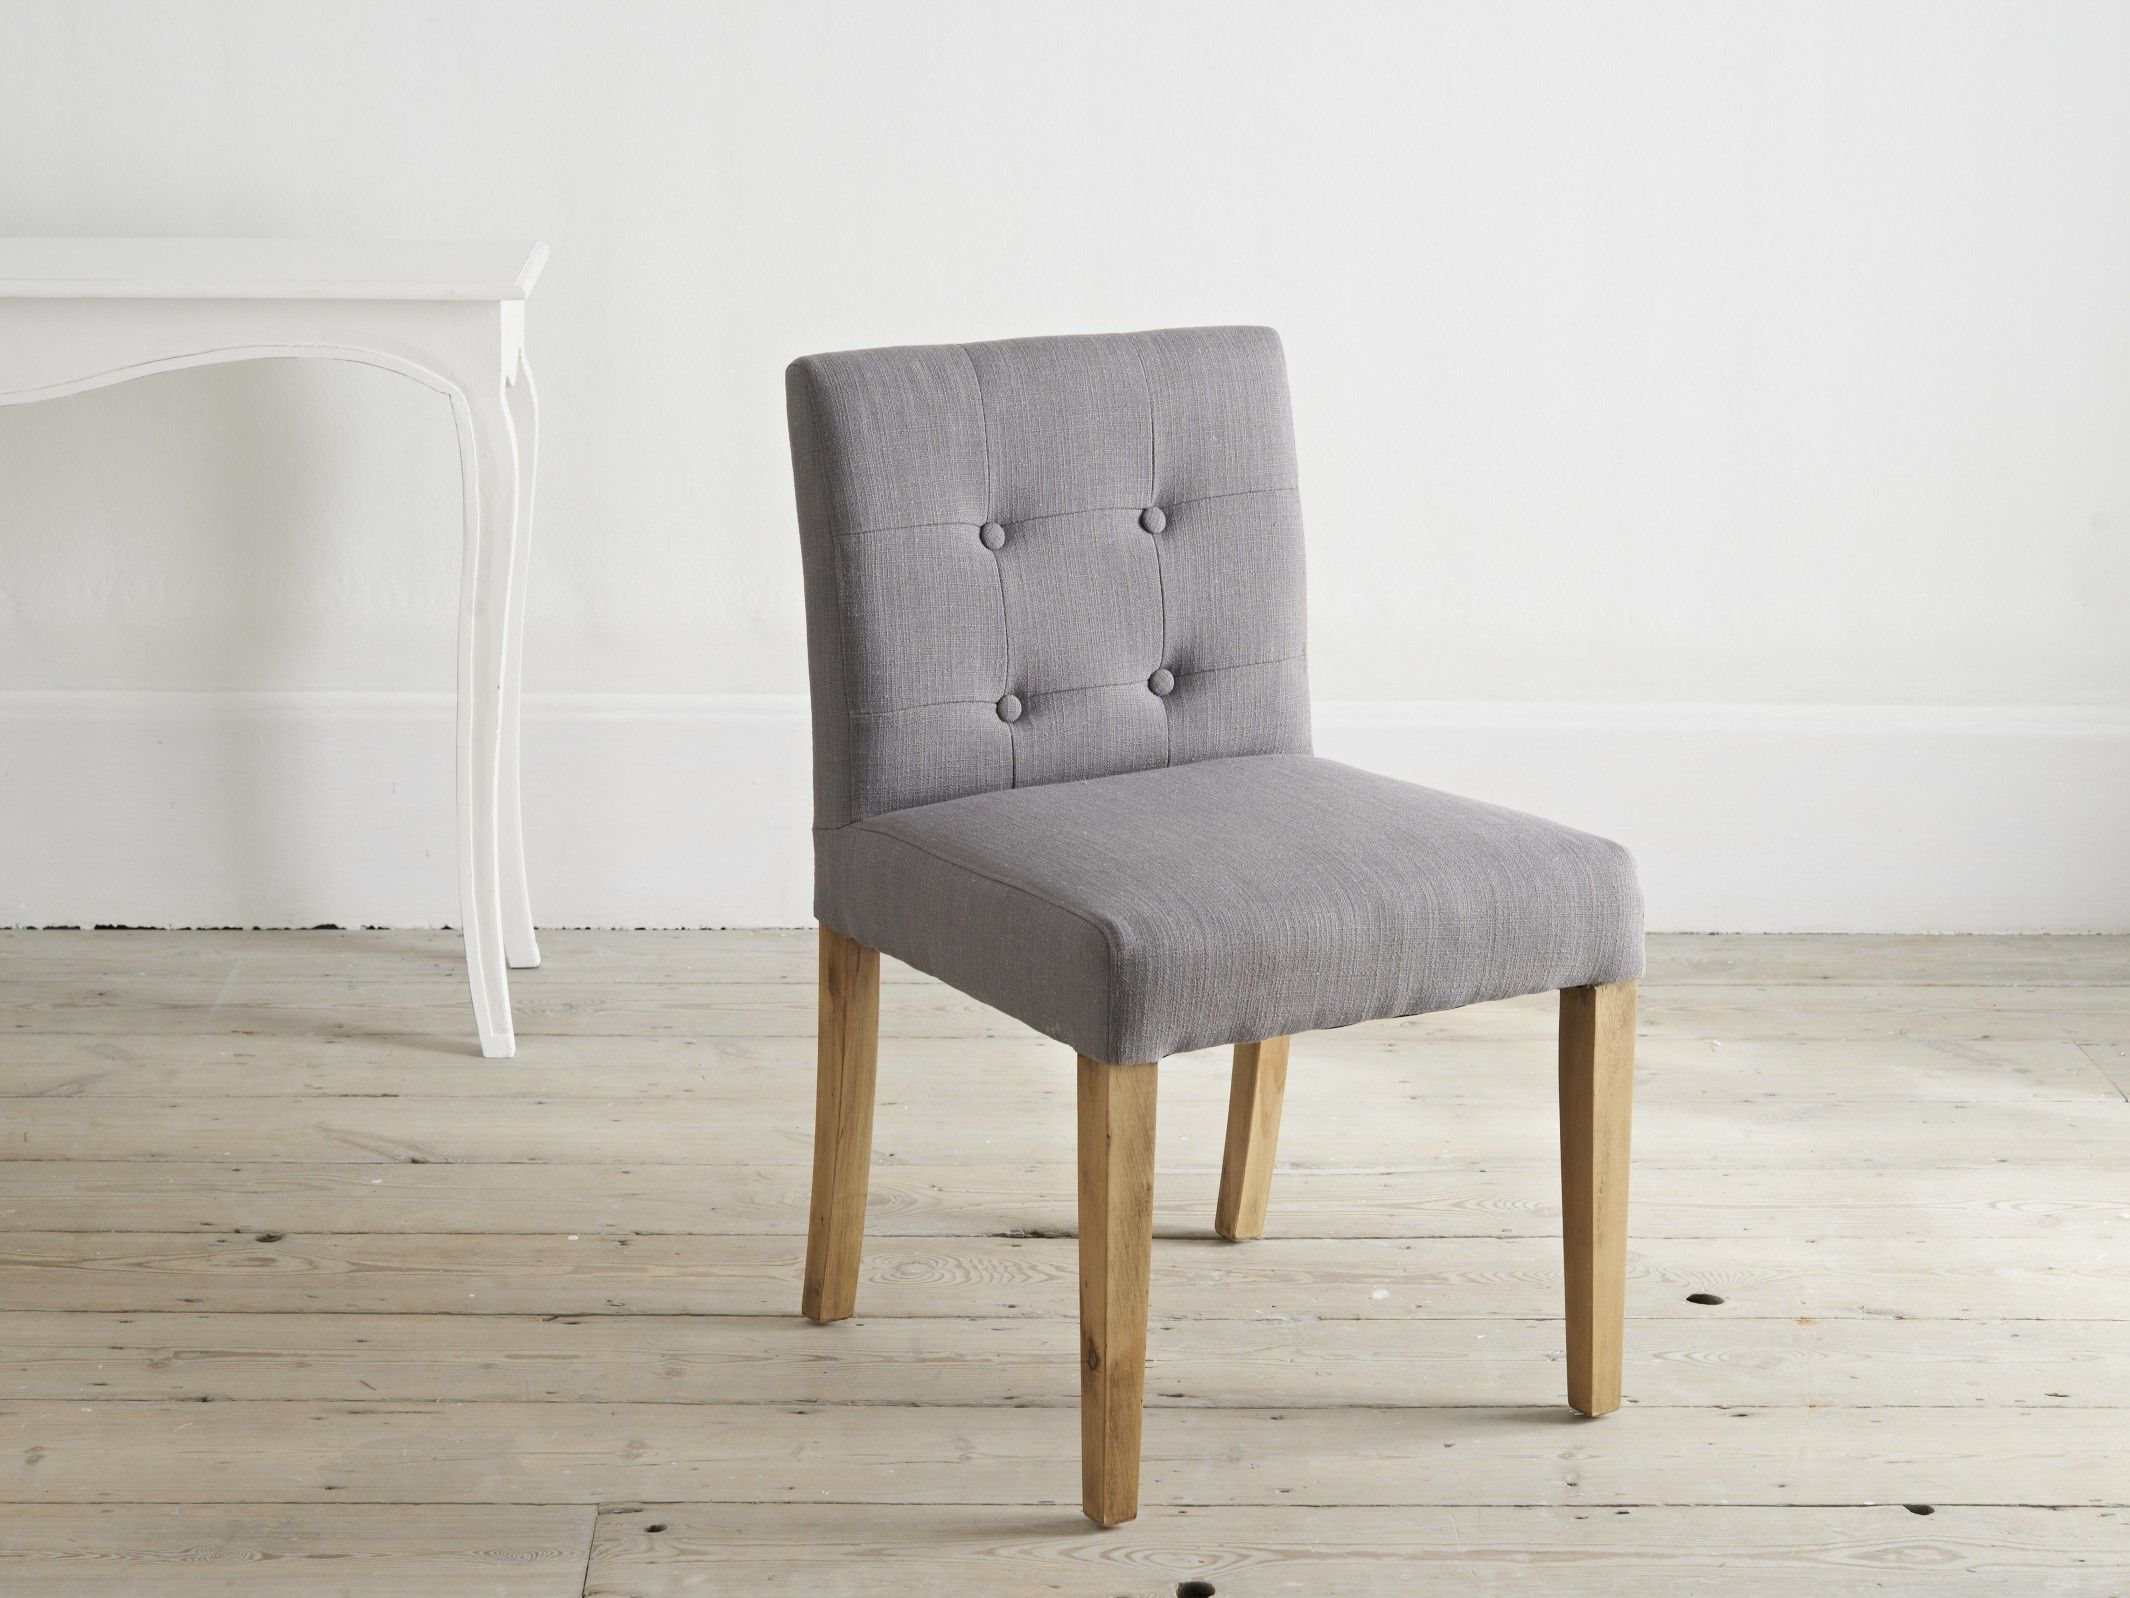 A Stunning Low Back Dining Chair With Birch Legs And A Textured